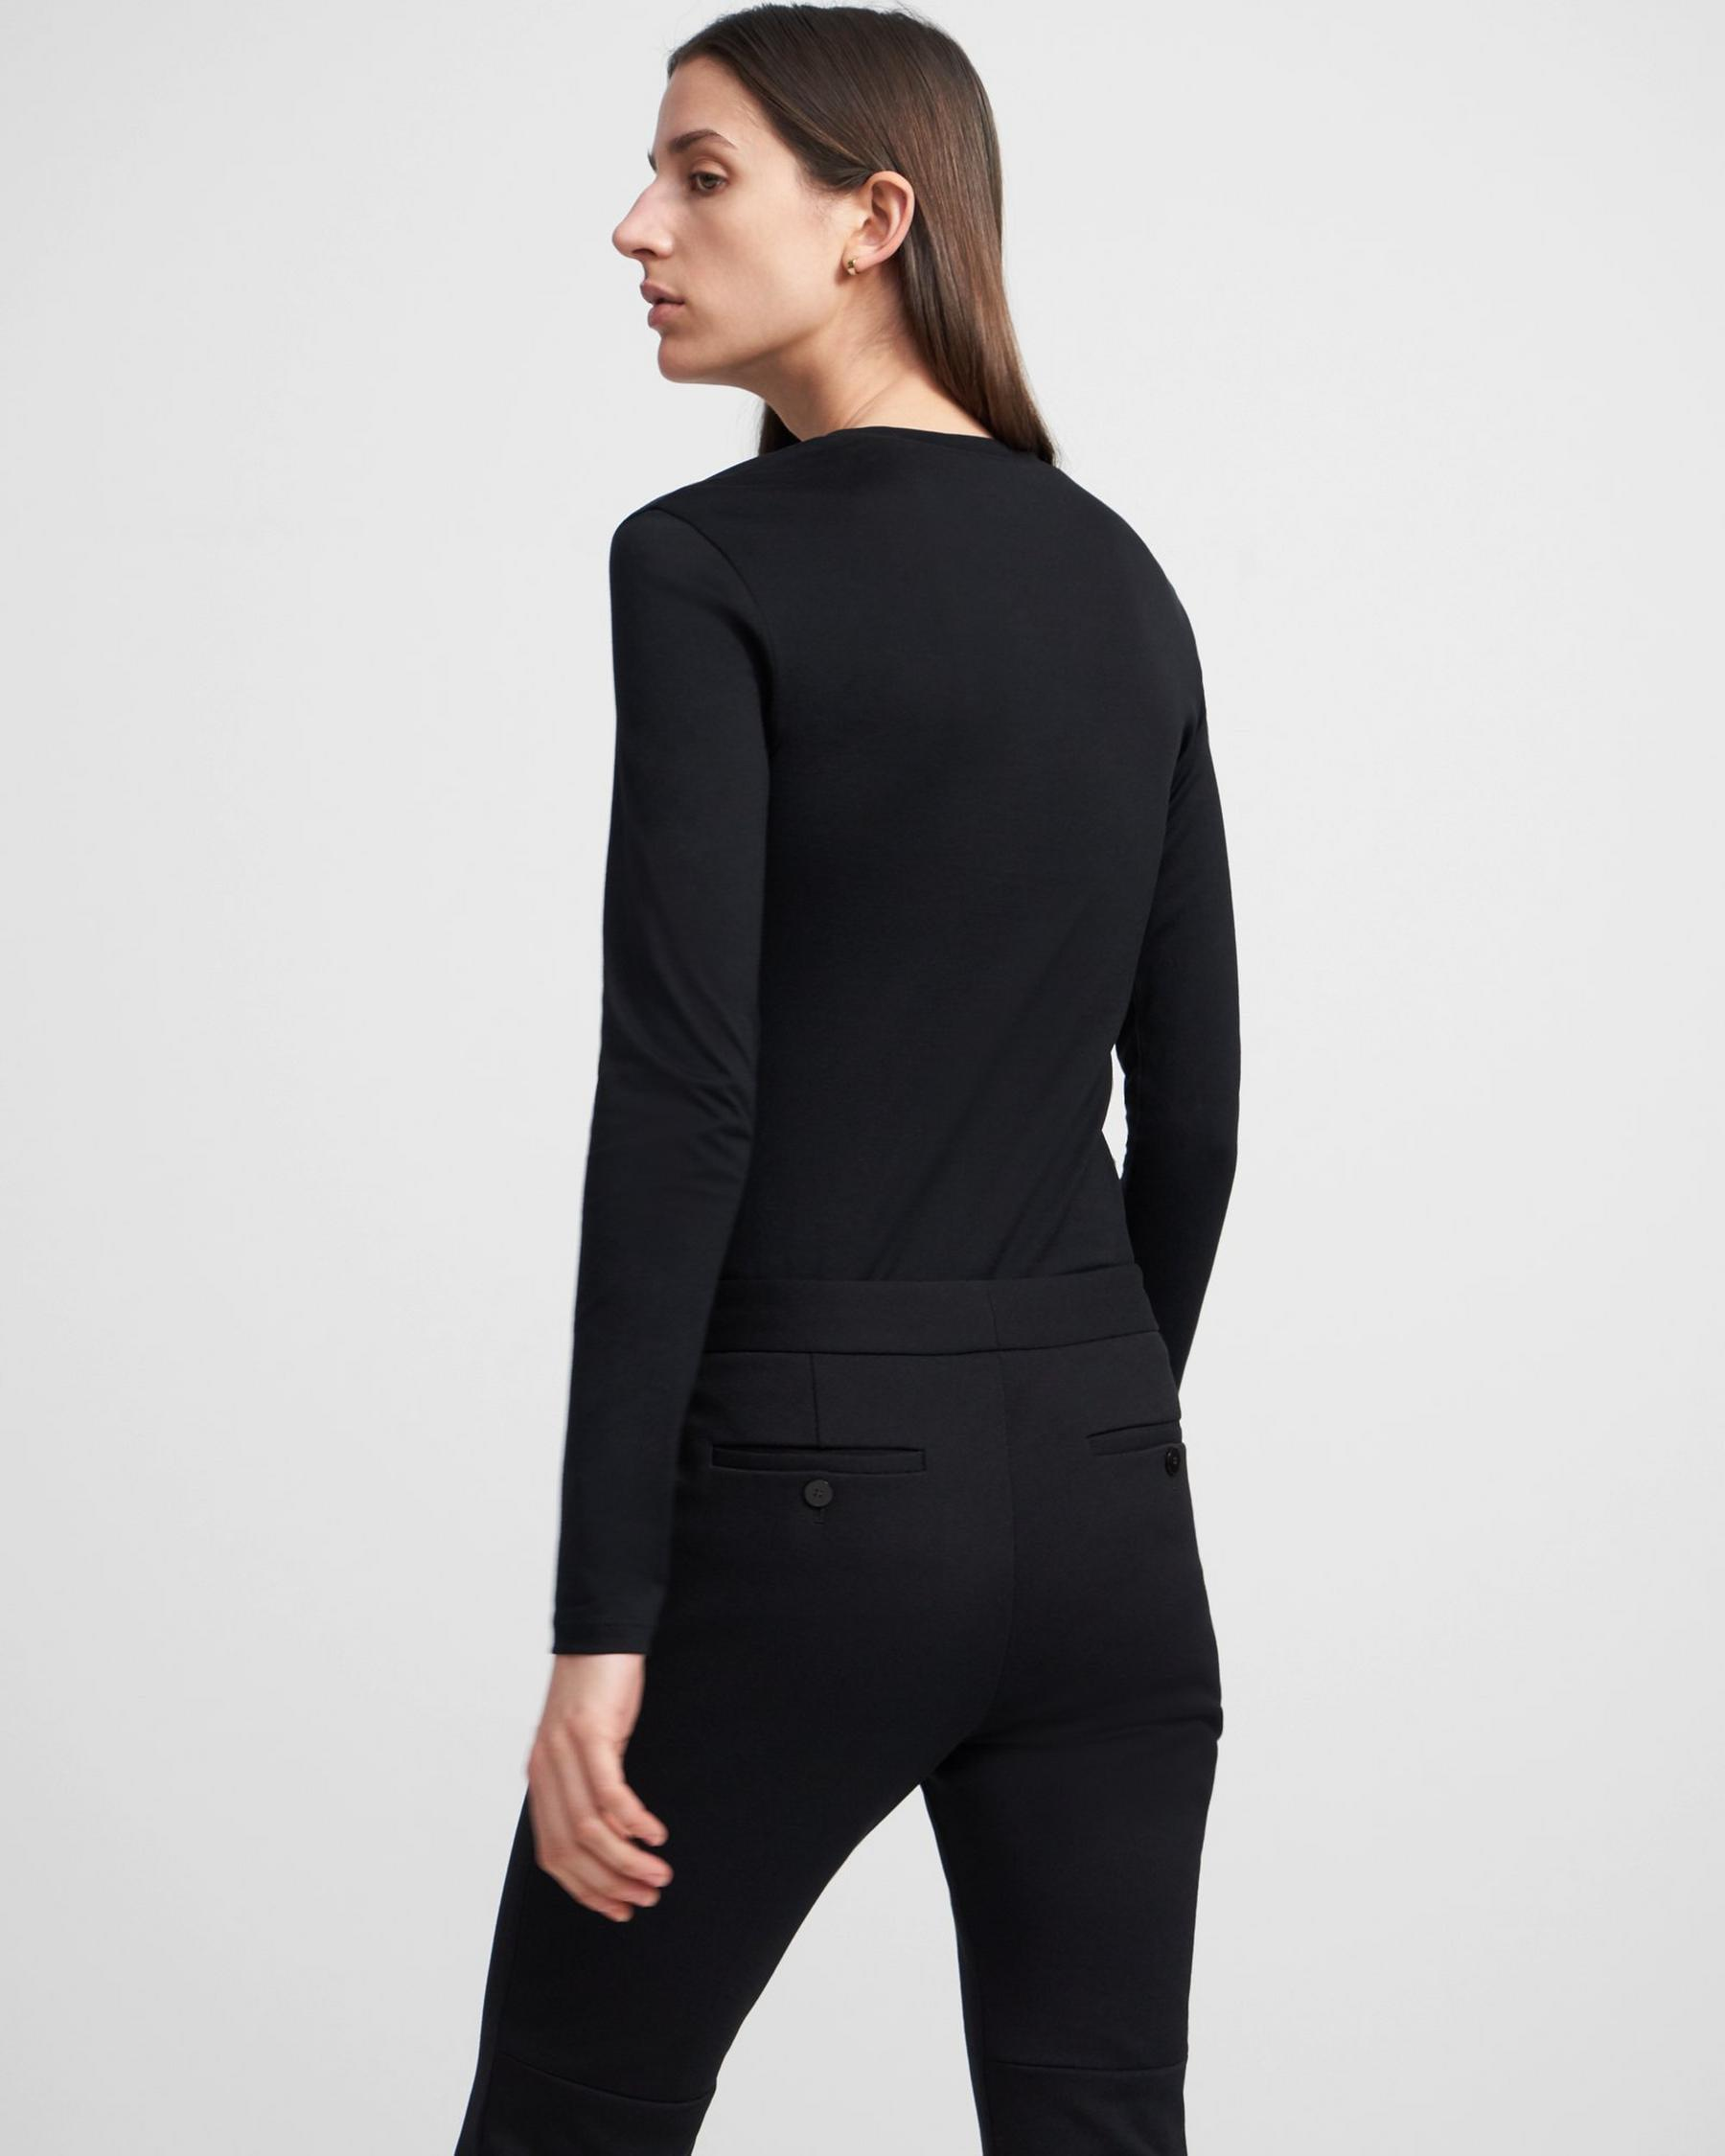 Long-Sleeve Tiny Tee in Cotton 1